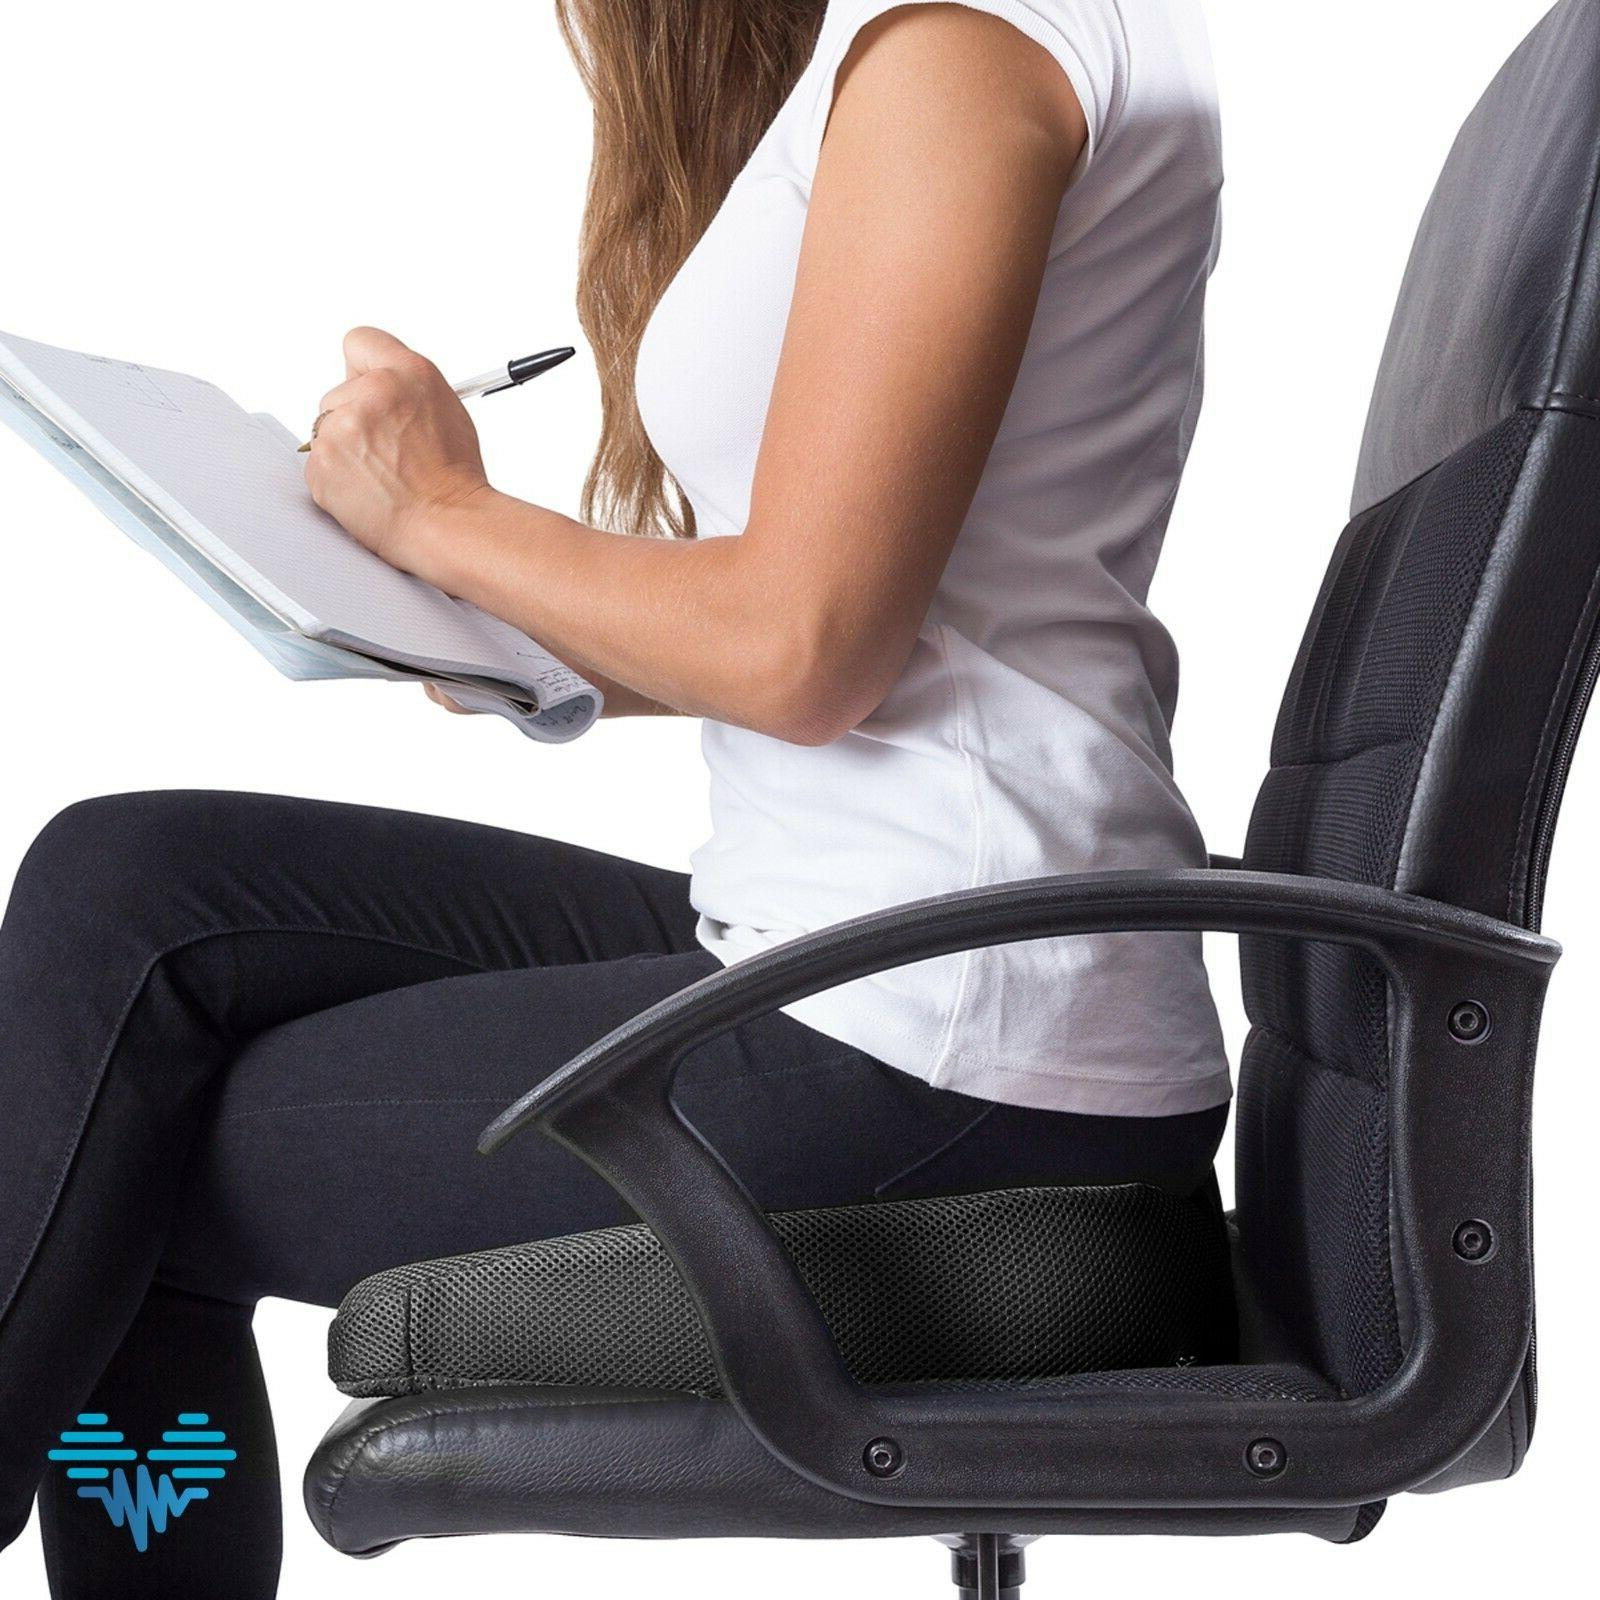 Orthopedic Seat - Pillow for & Relief